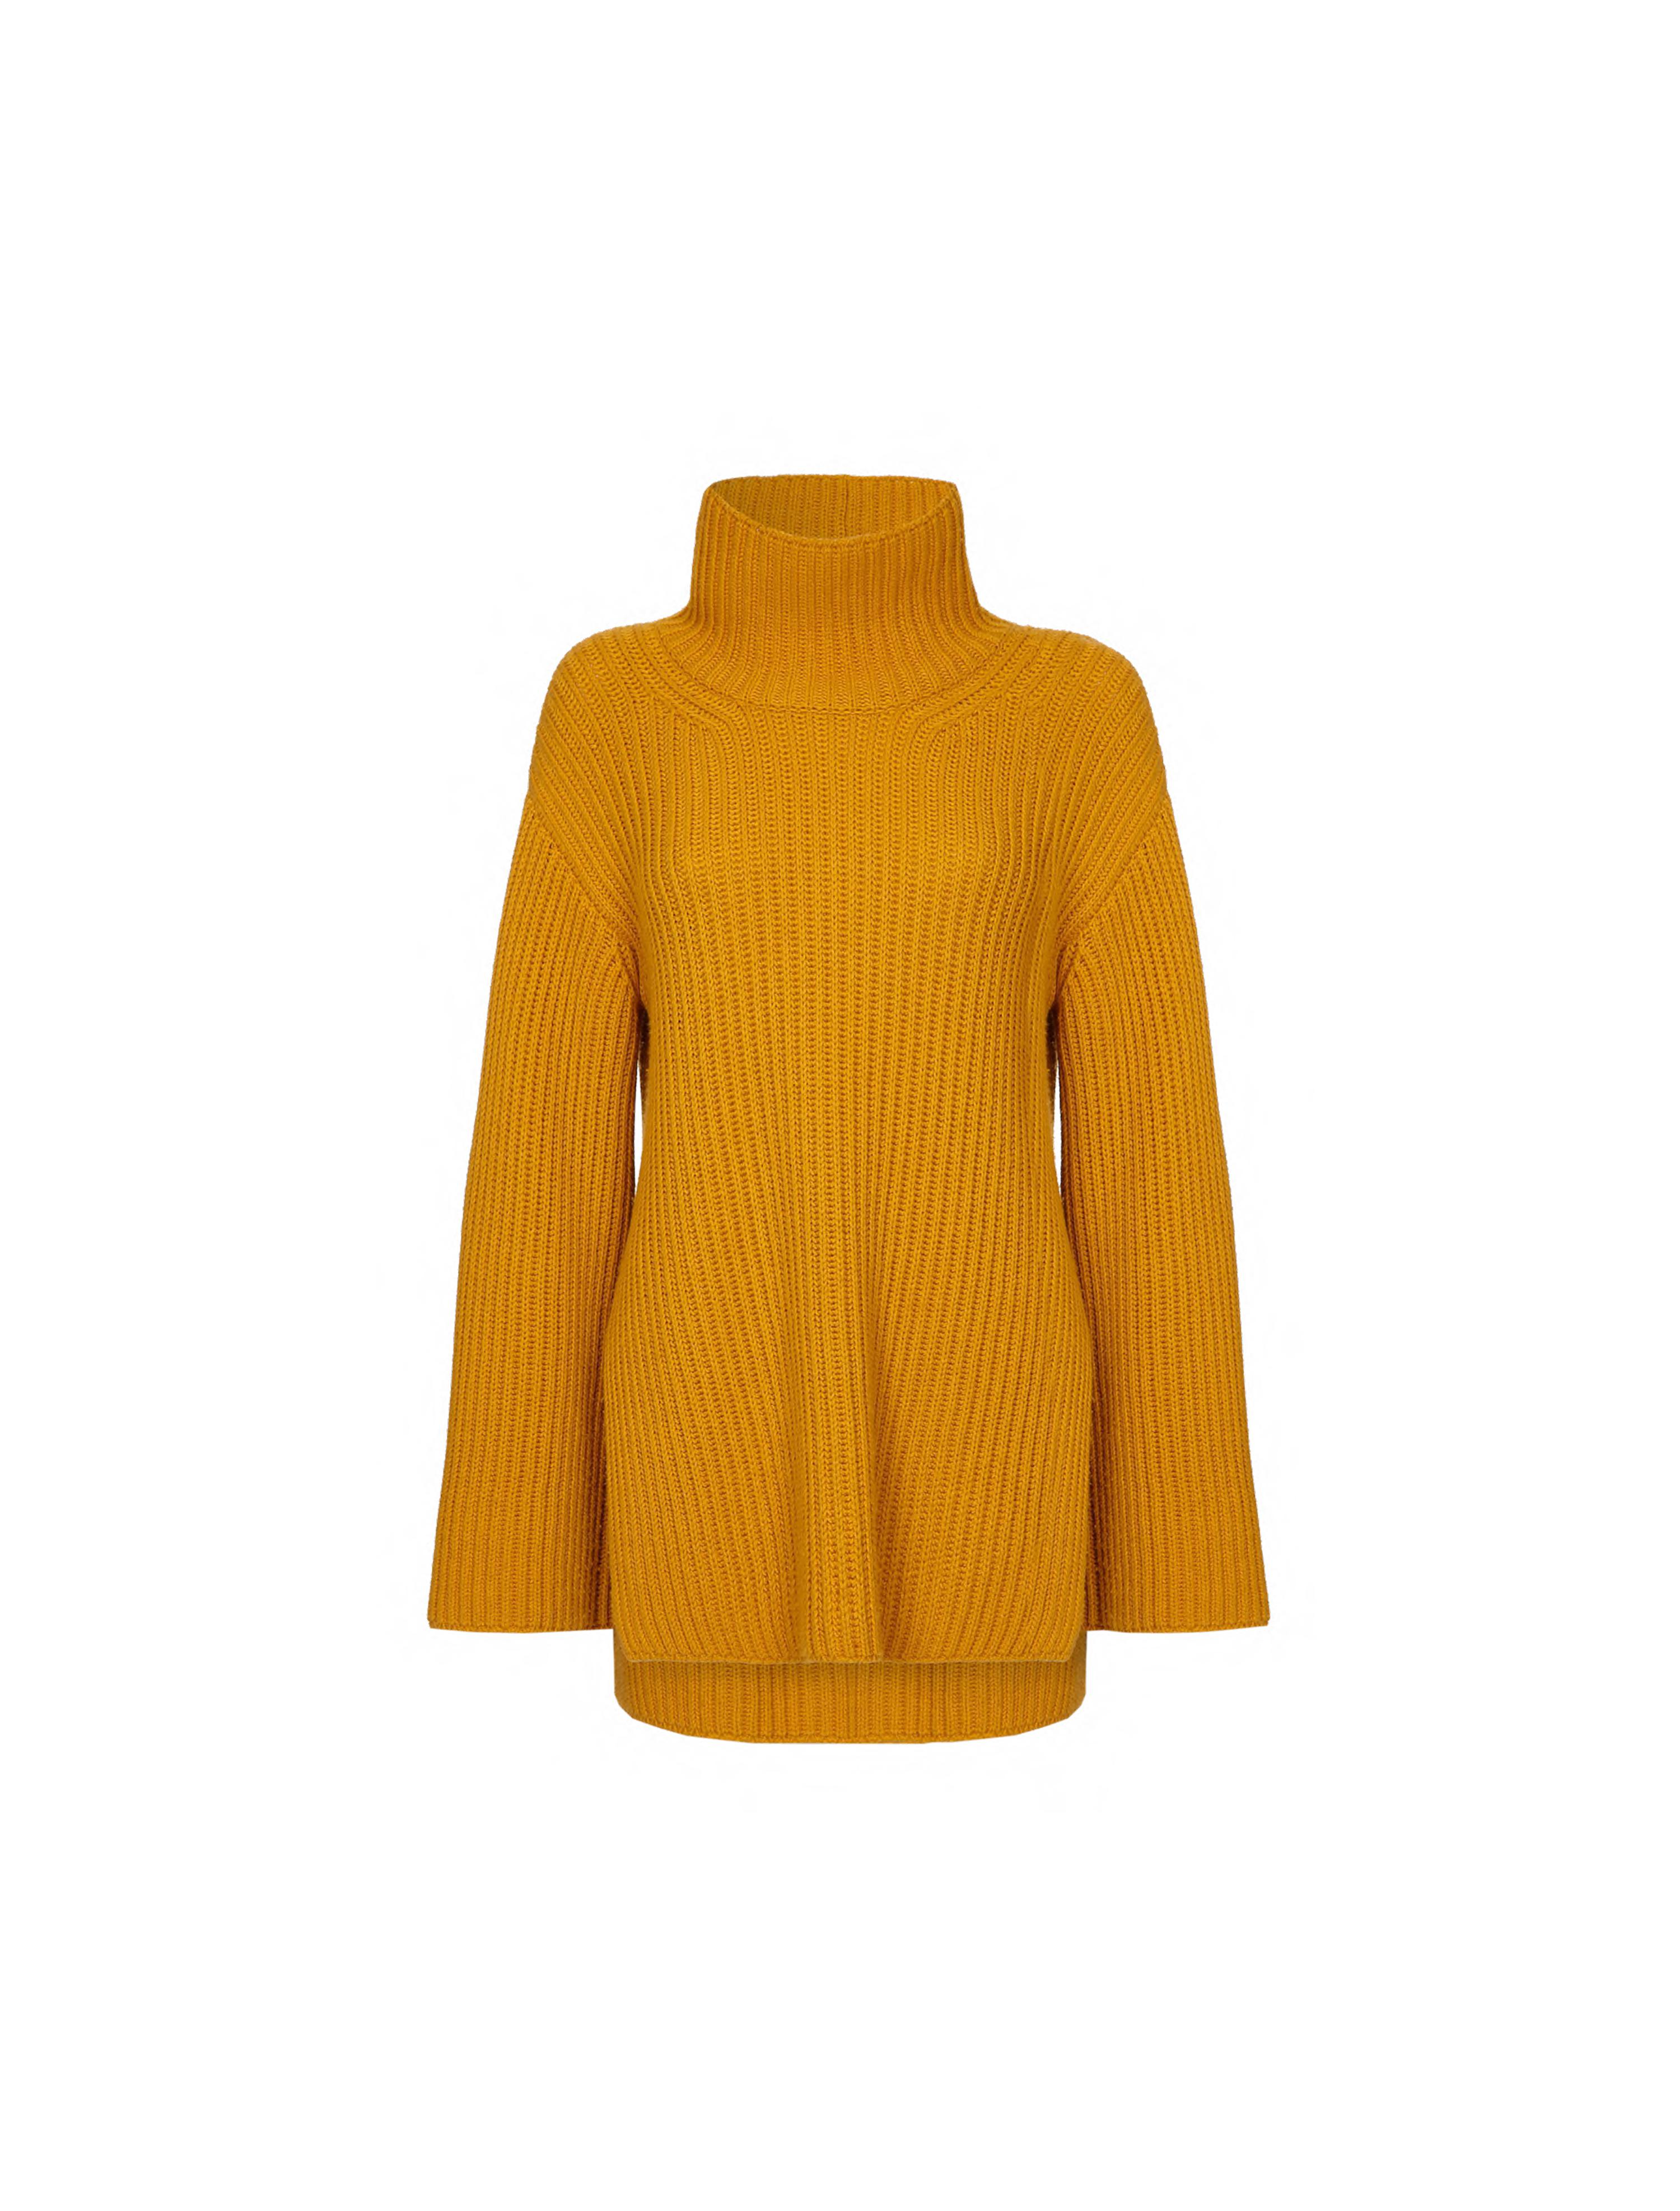 THE MAYKA CASHMERE BLEND HIGH NECK SWEATER 0